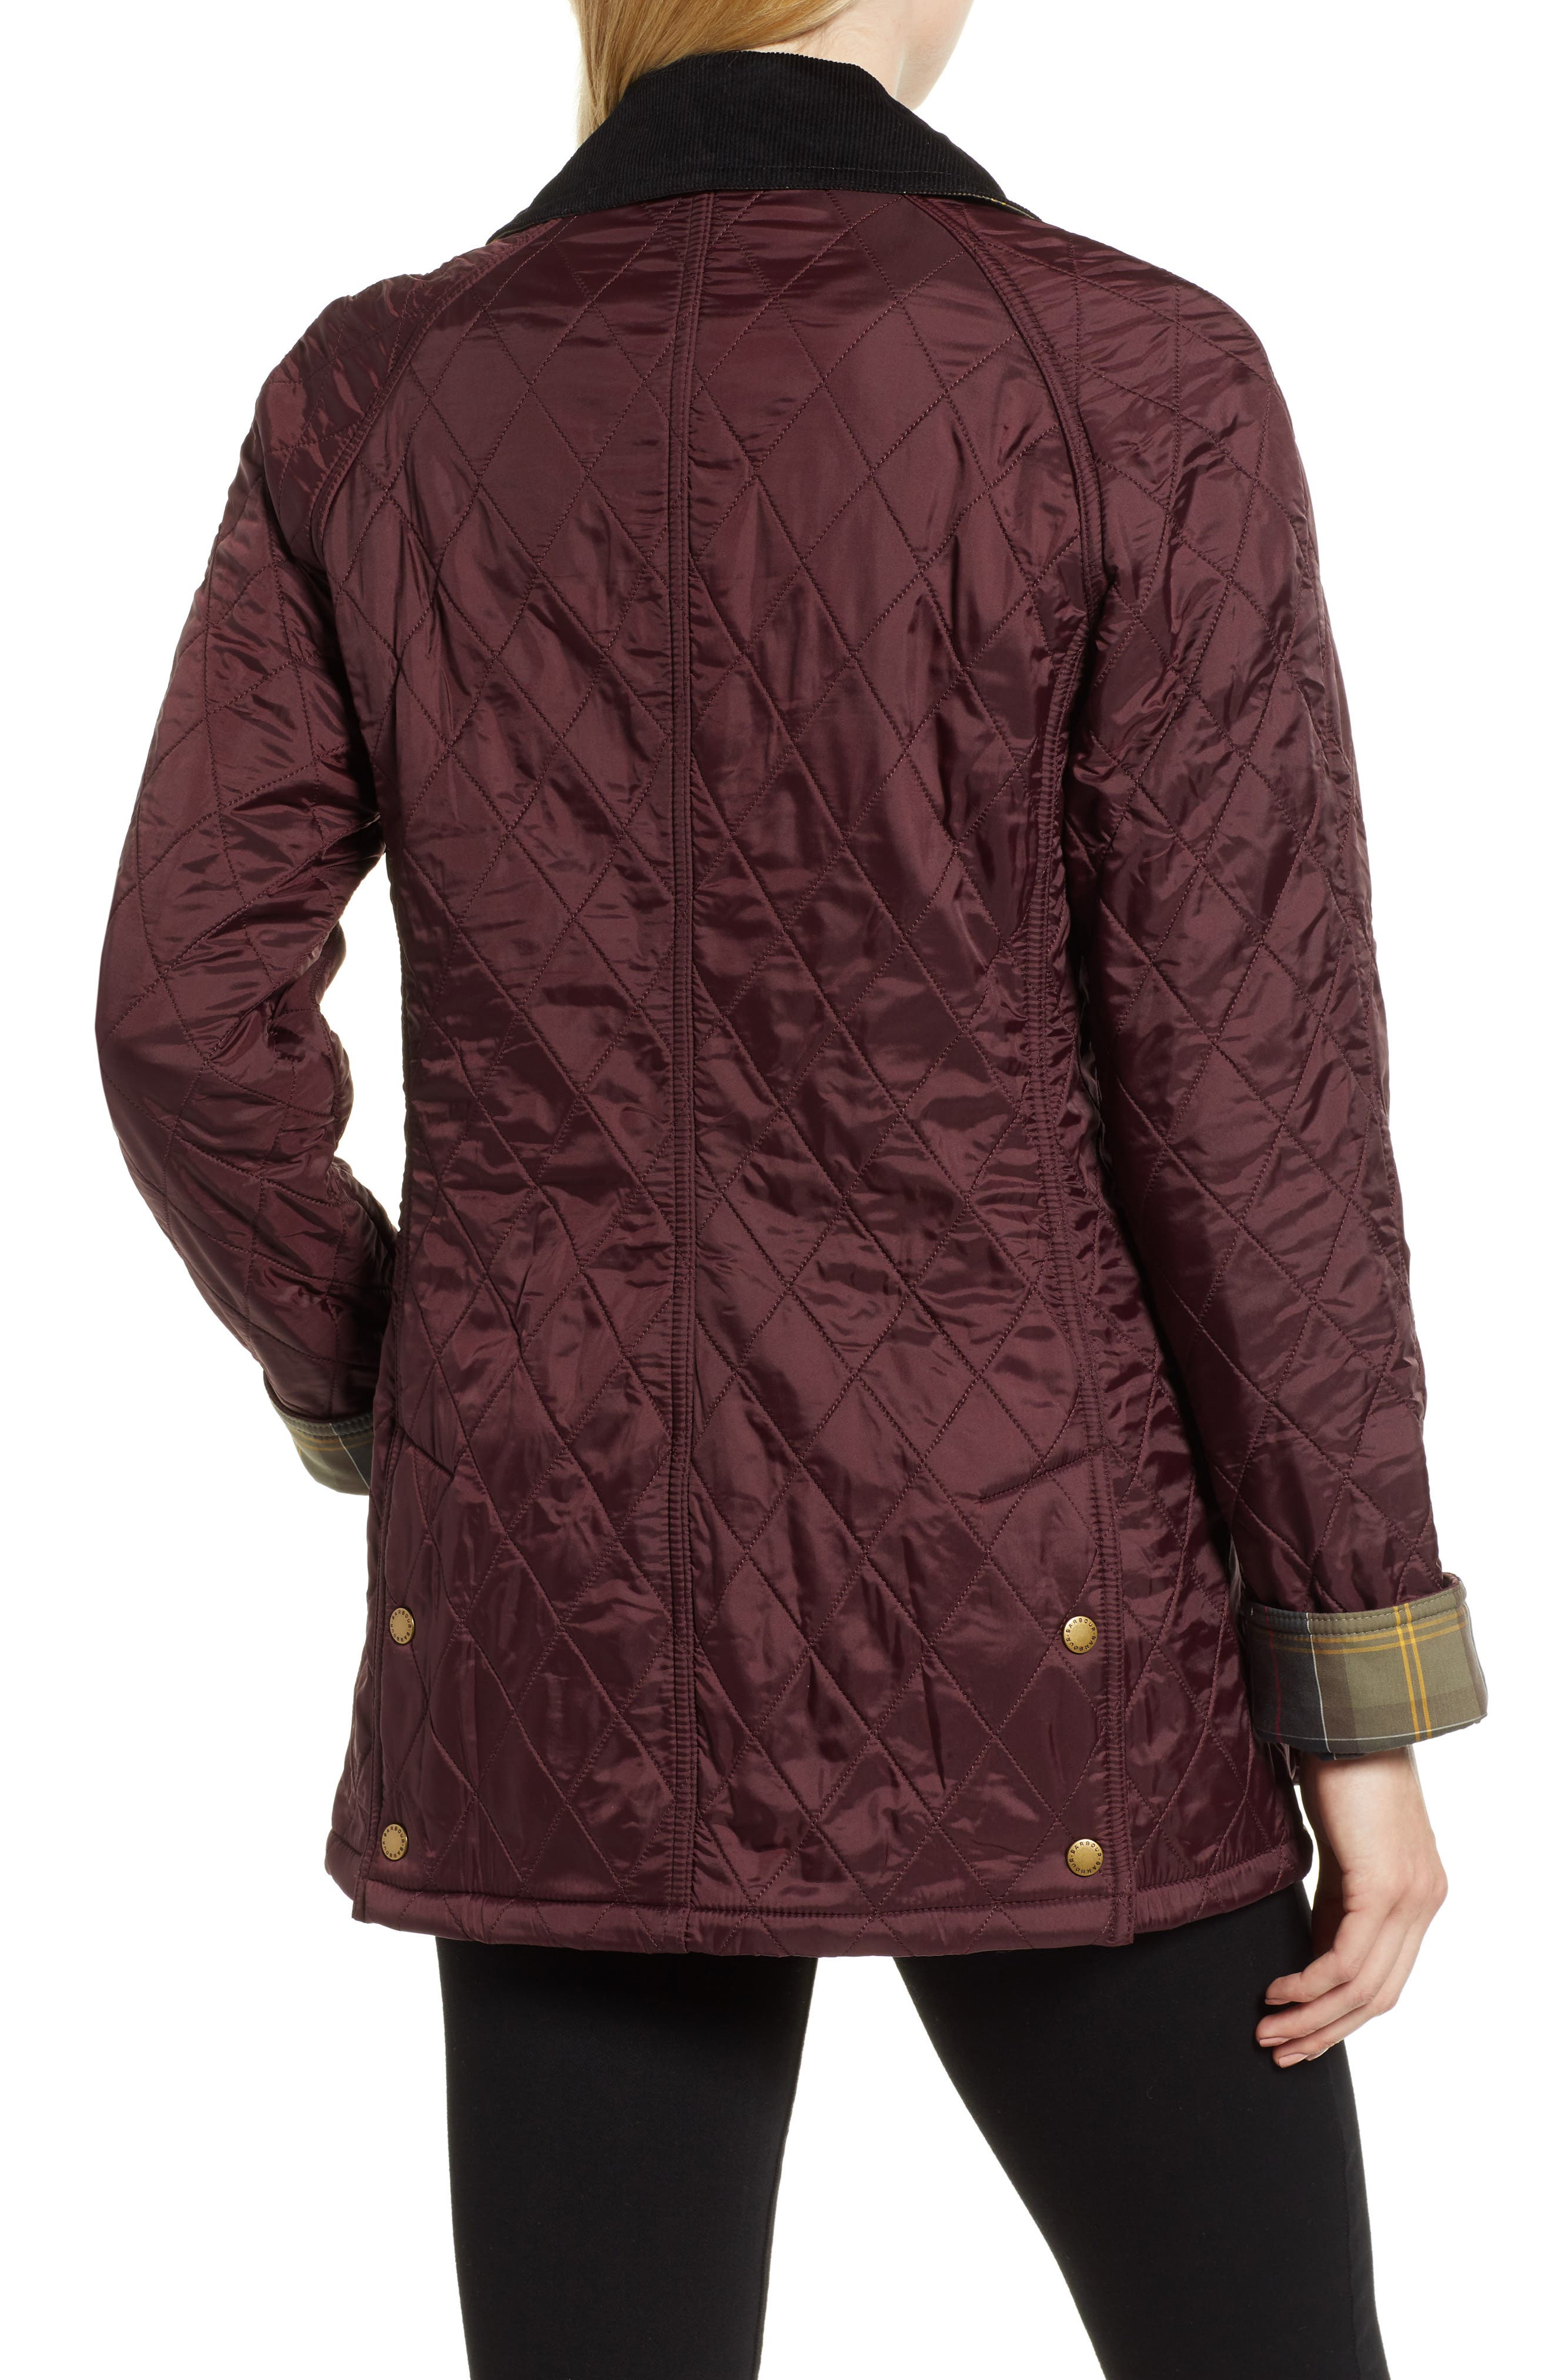 'Beadnell' Quilted Jacket,                             Alternate thumbnail 2, color,                             930